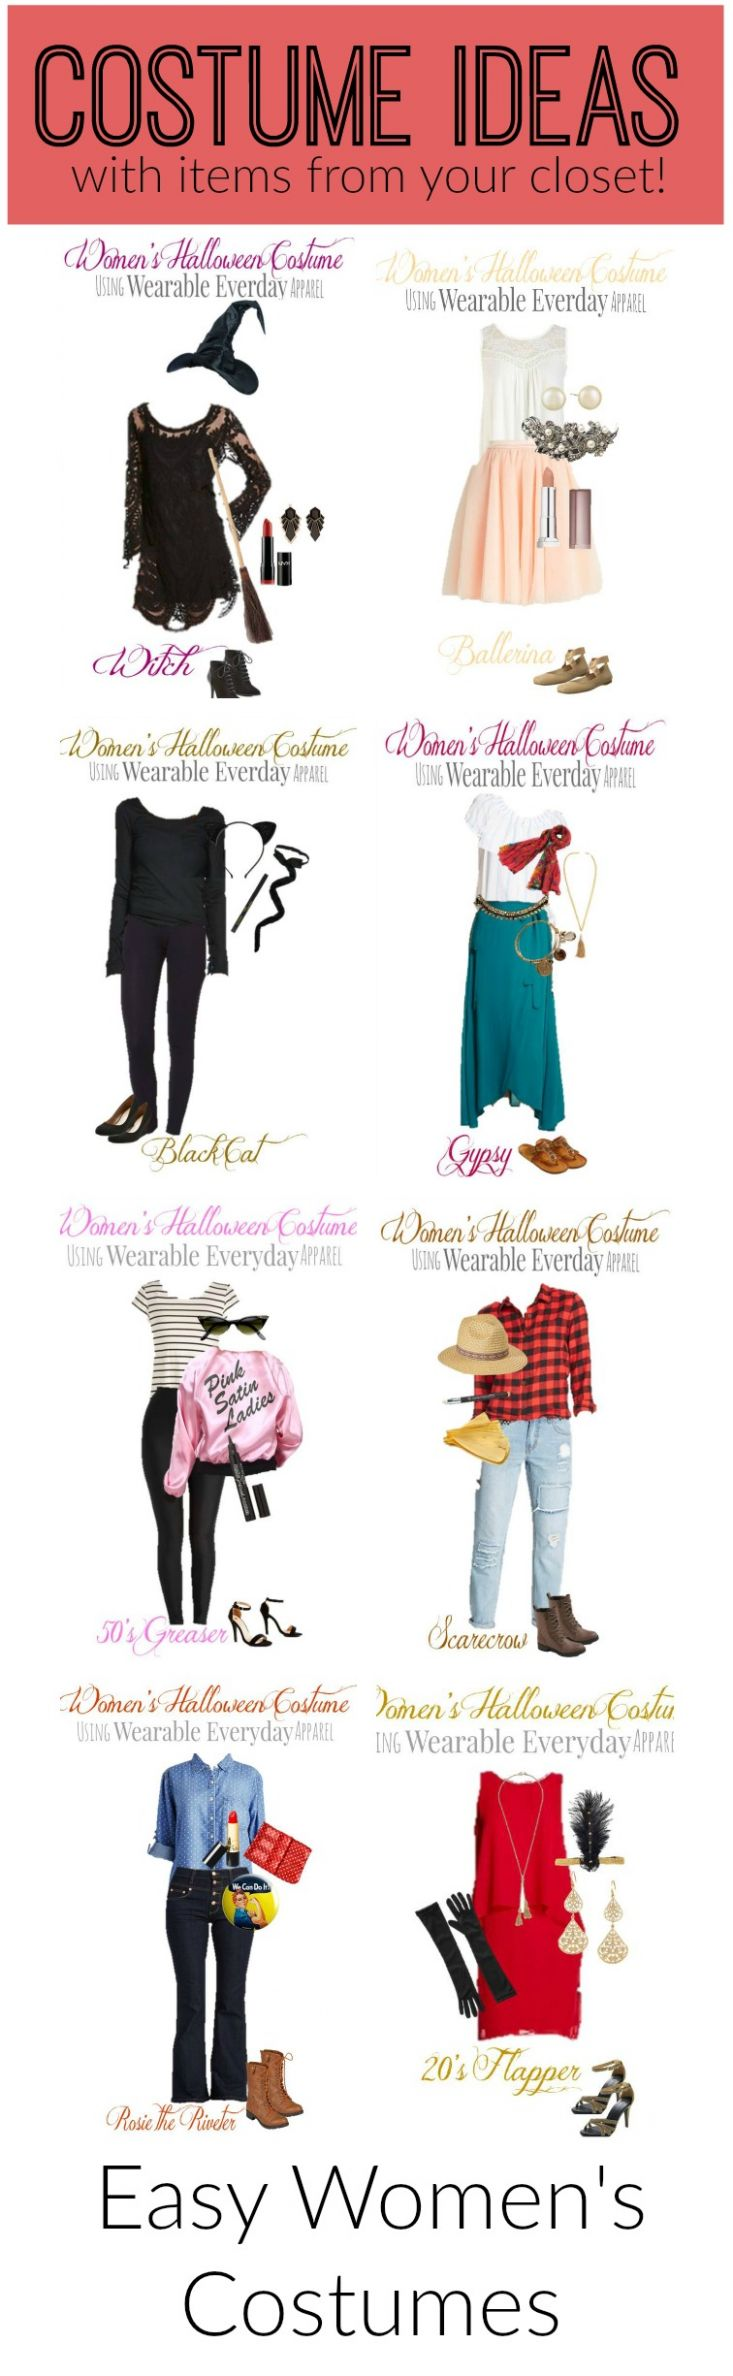 Easy Halloween Costumes for Women (With images) | Easy halloween ...